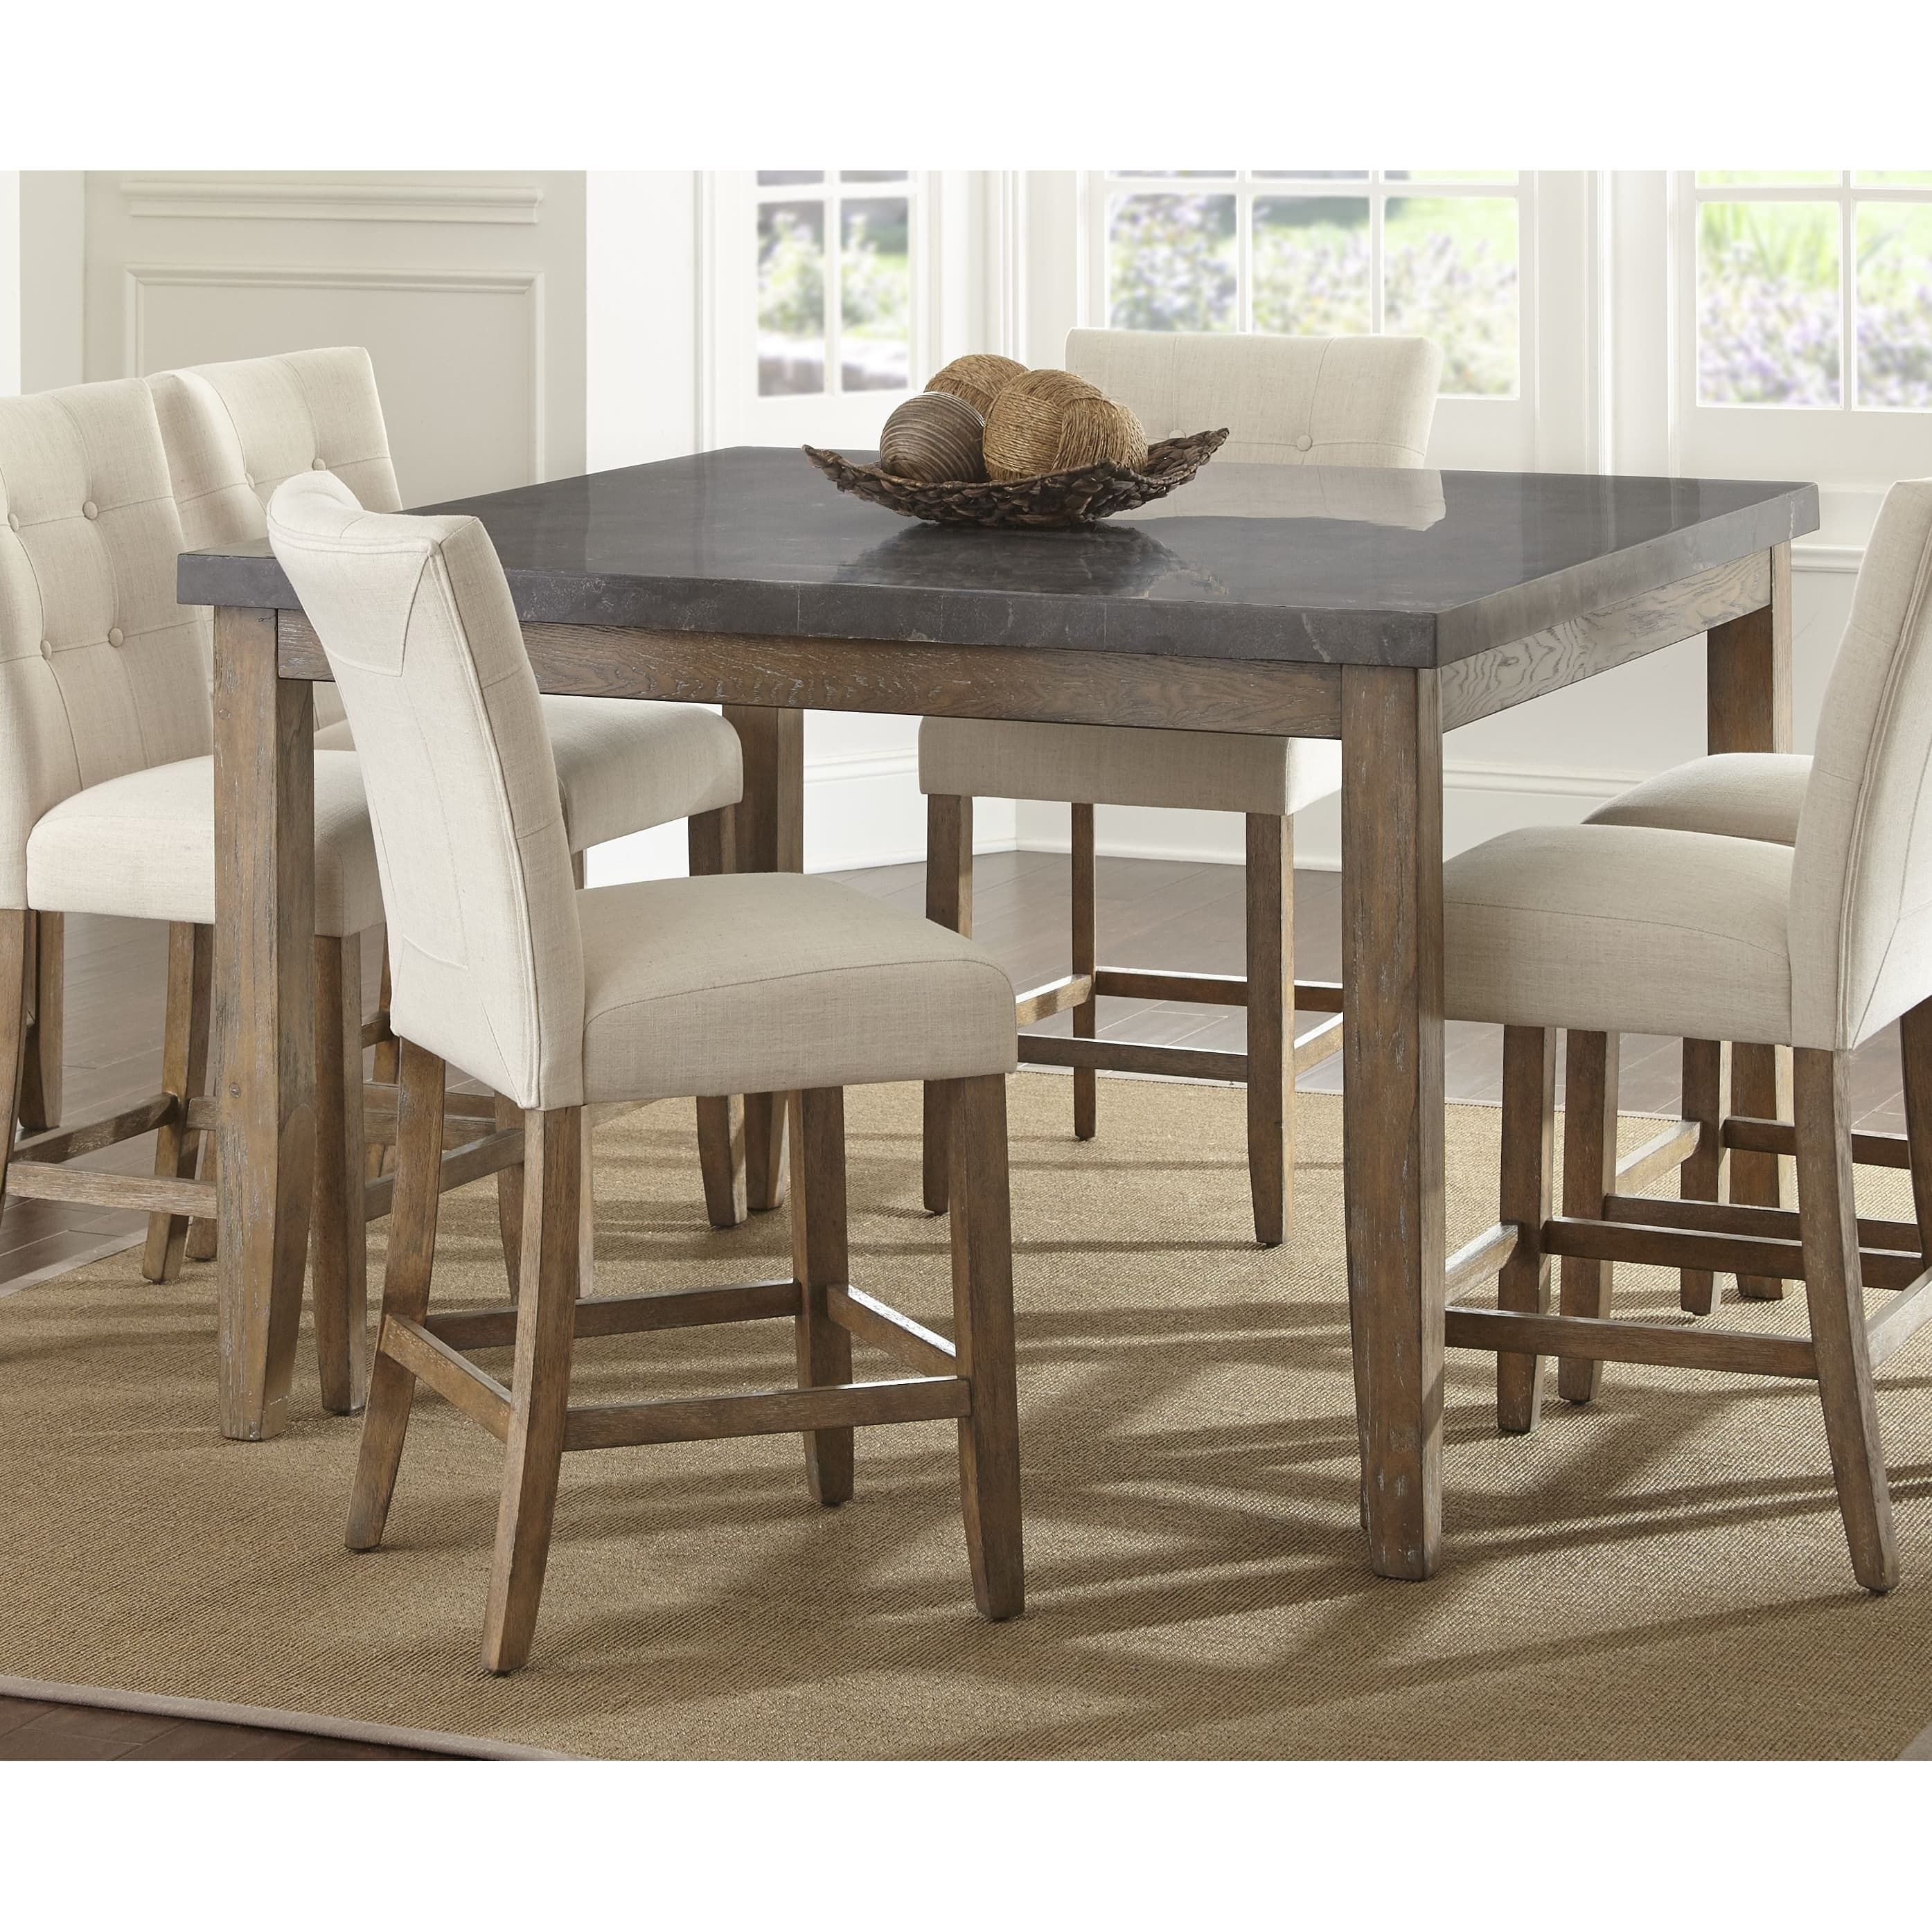 Danni 54 Inch Square Counter Height Dining Table With Stone